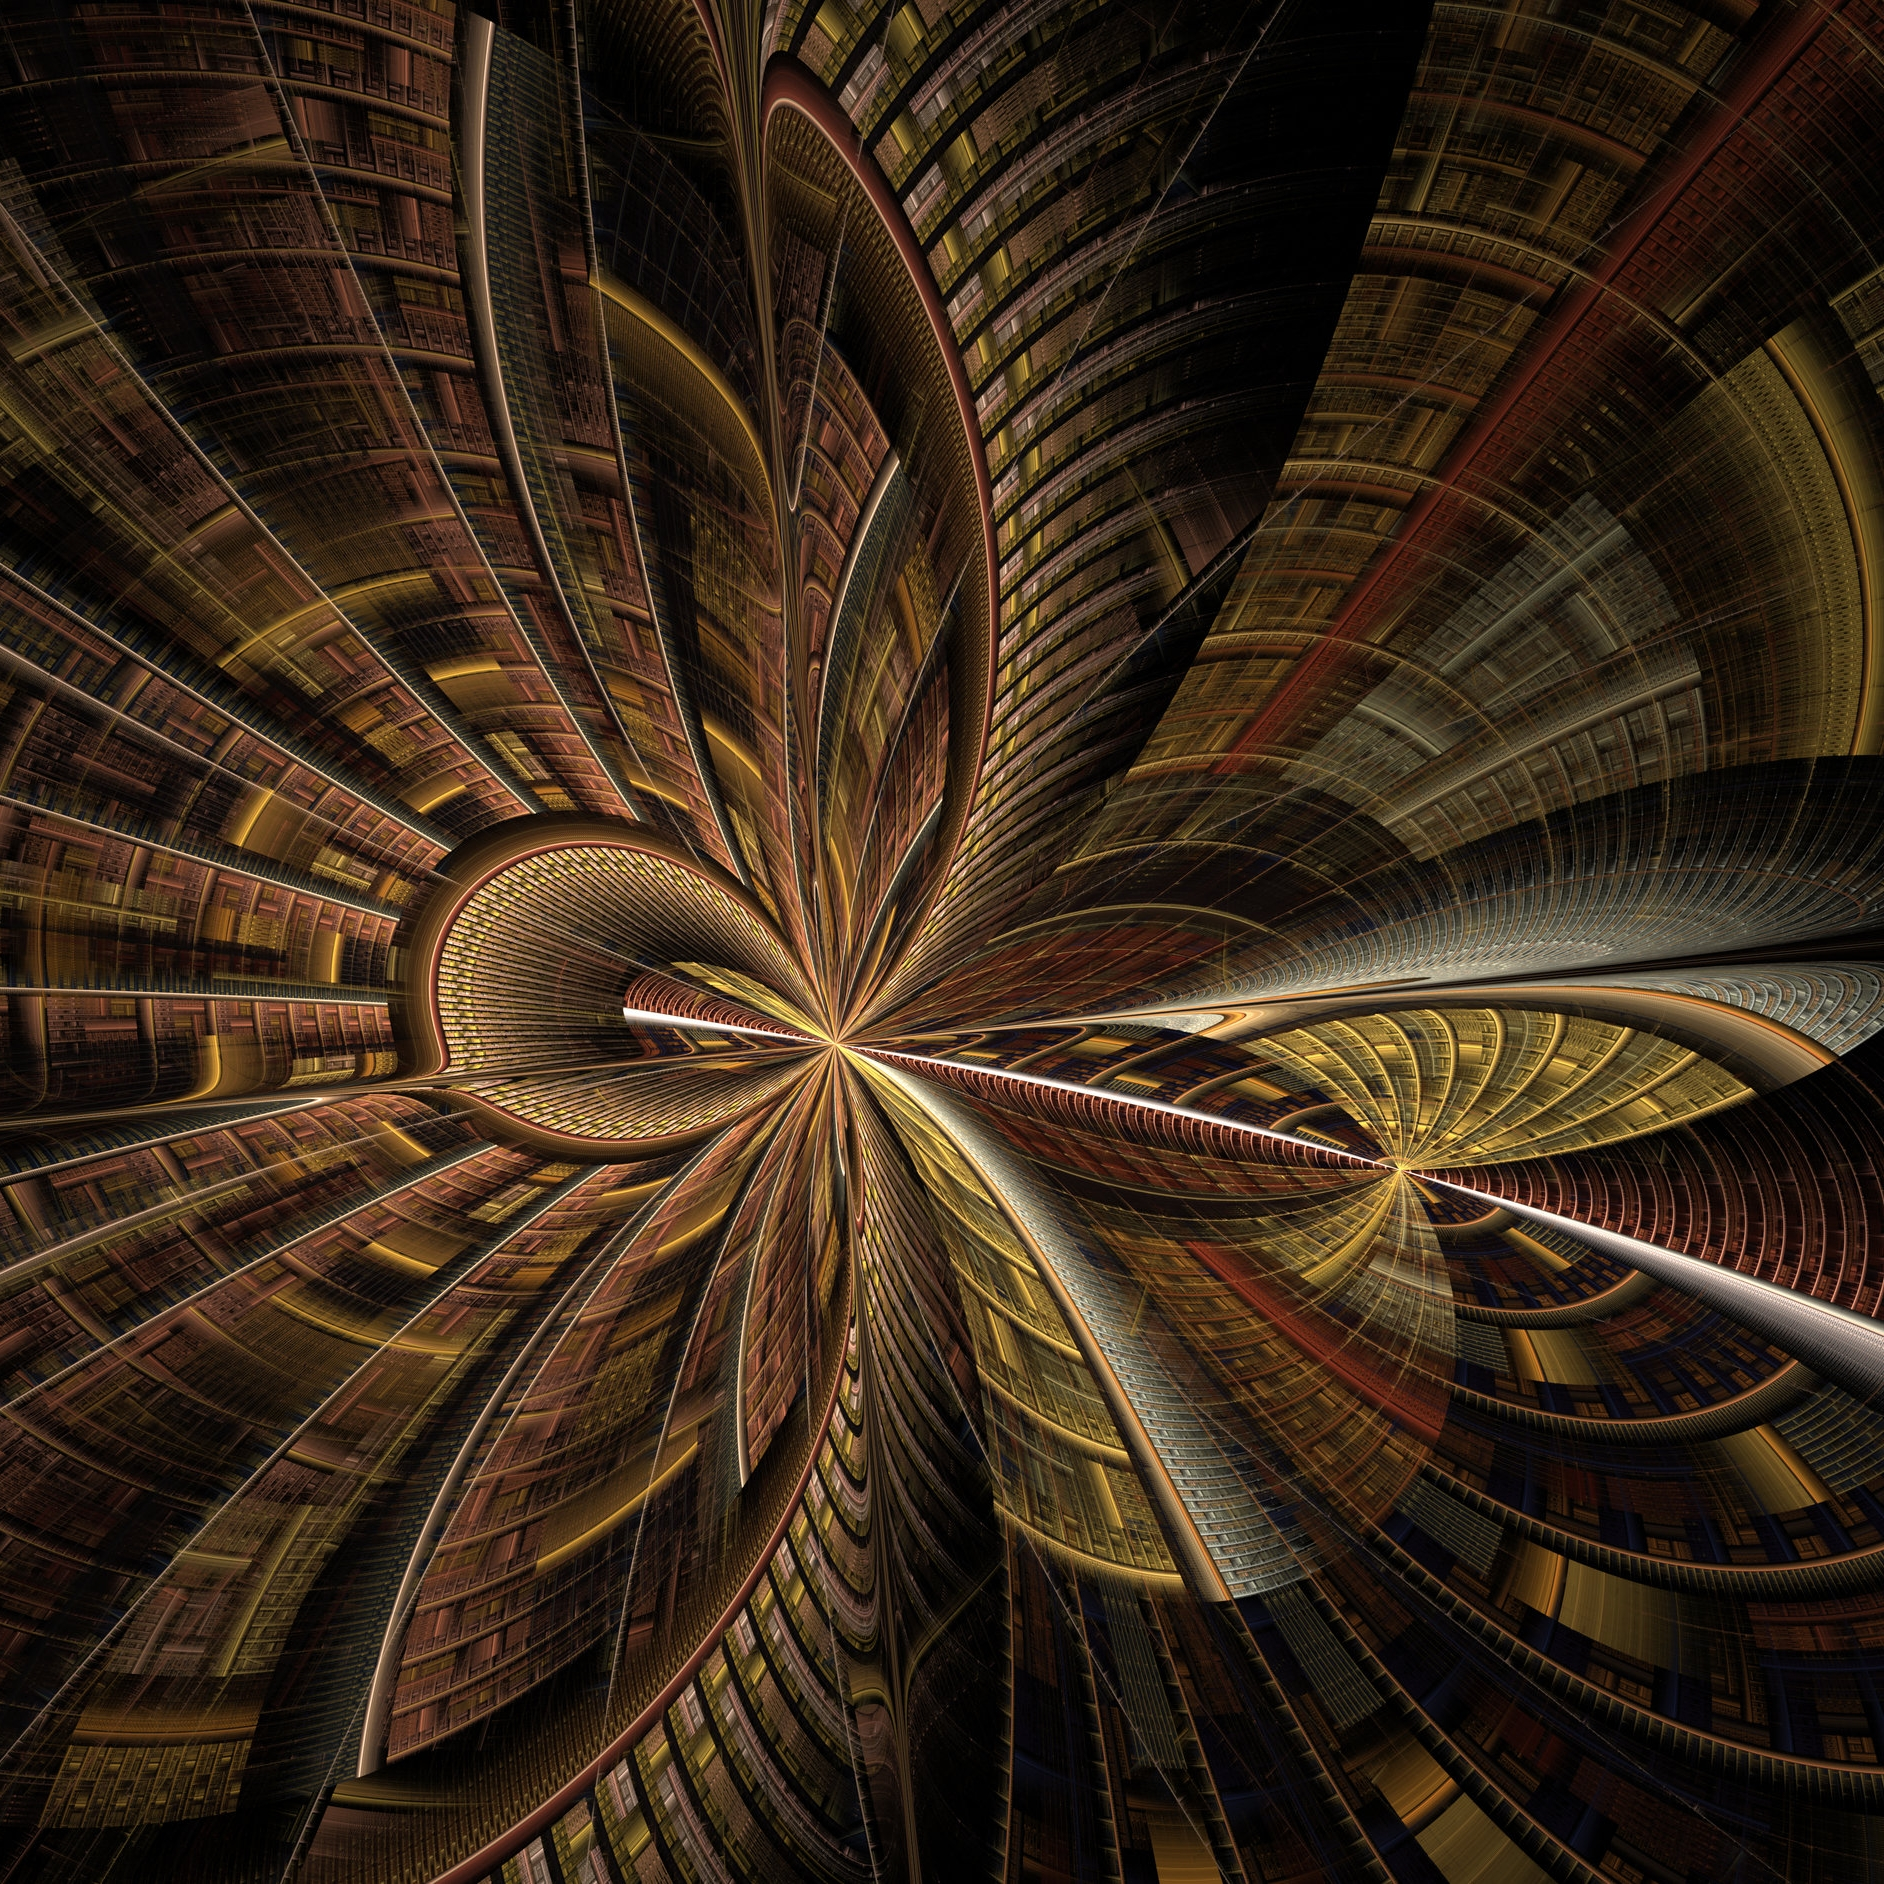 Abstracted swirling bookcases